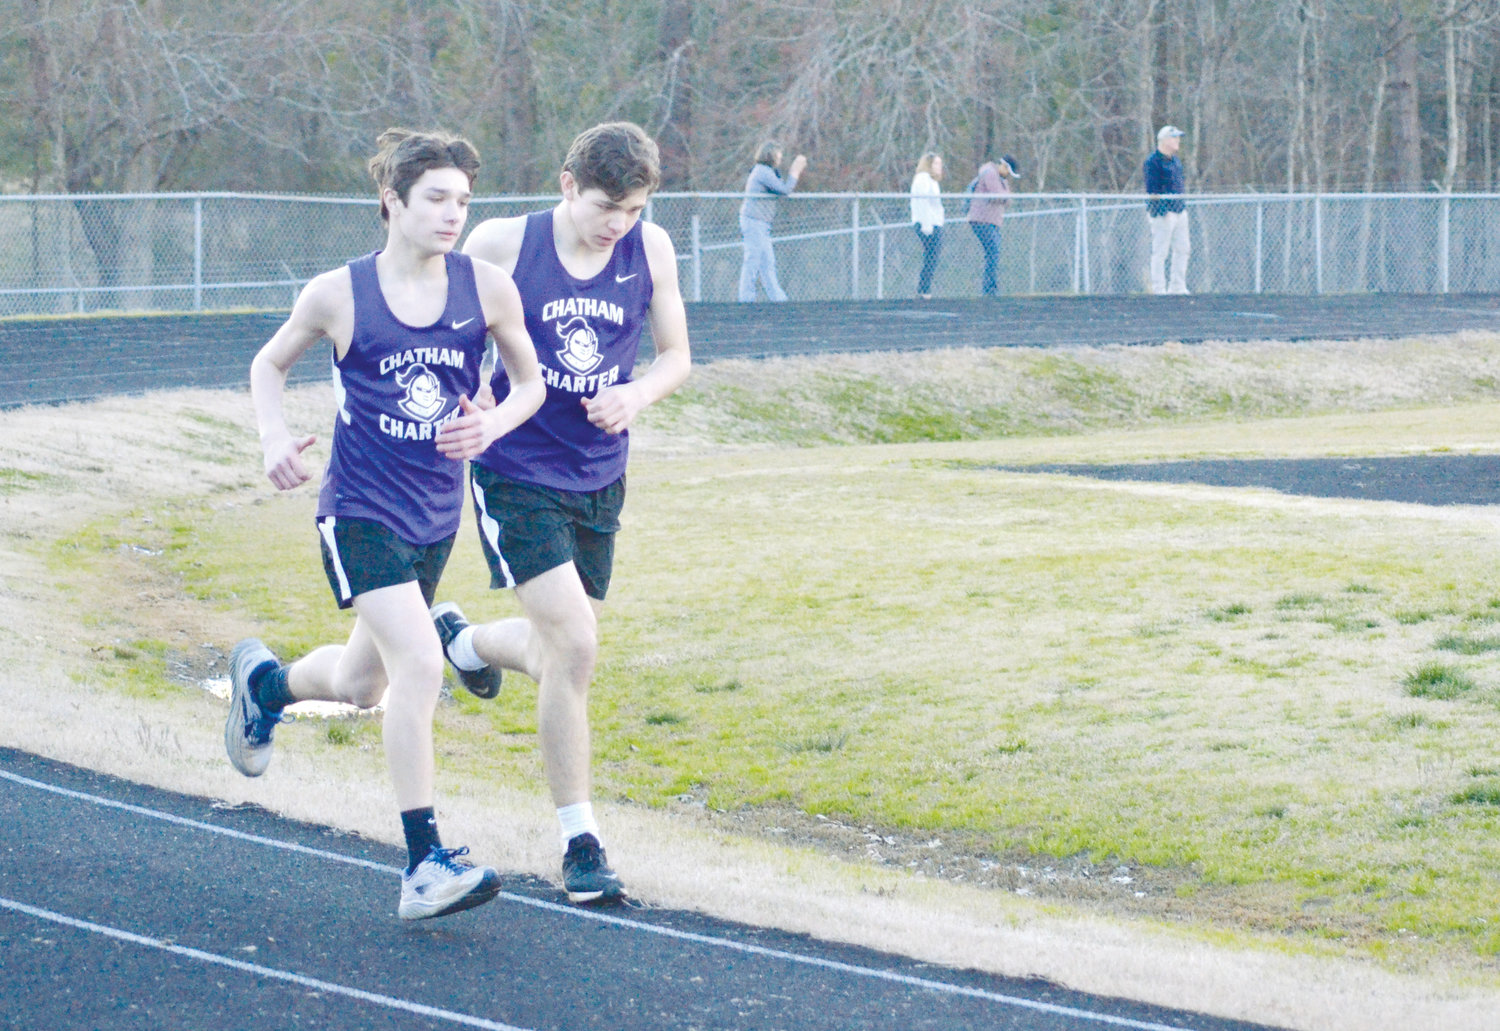 Chatham Charter distance runners Noah Lambert and Luke Fuller make their way down the track in Tuesday's track and field event at Chatham Central high school.